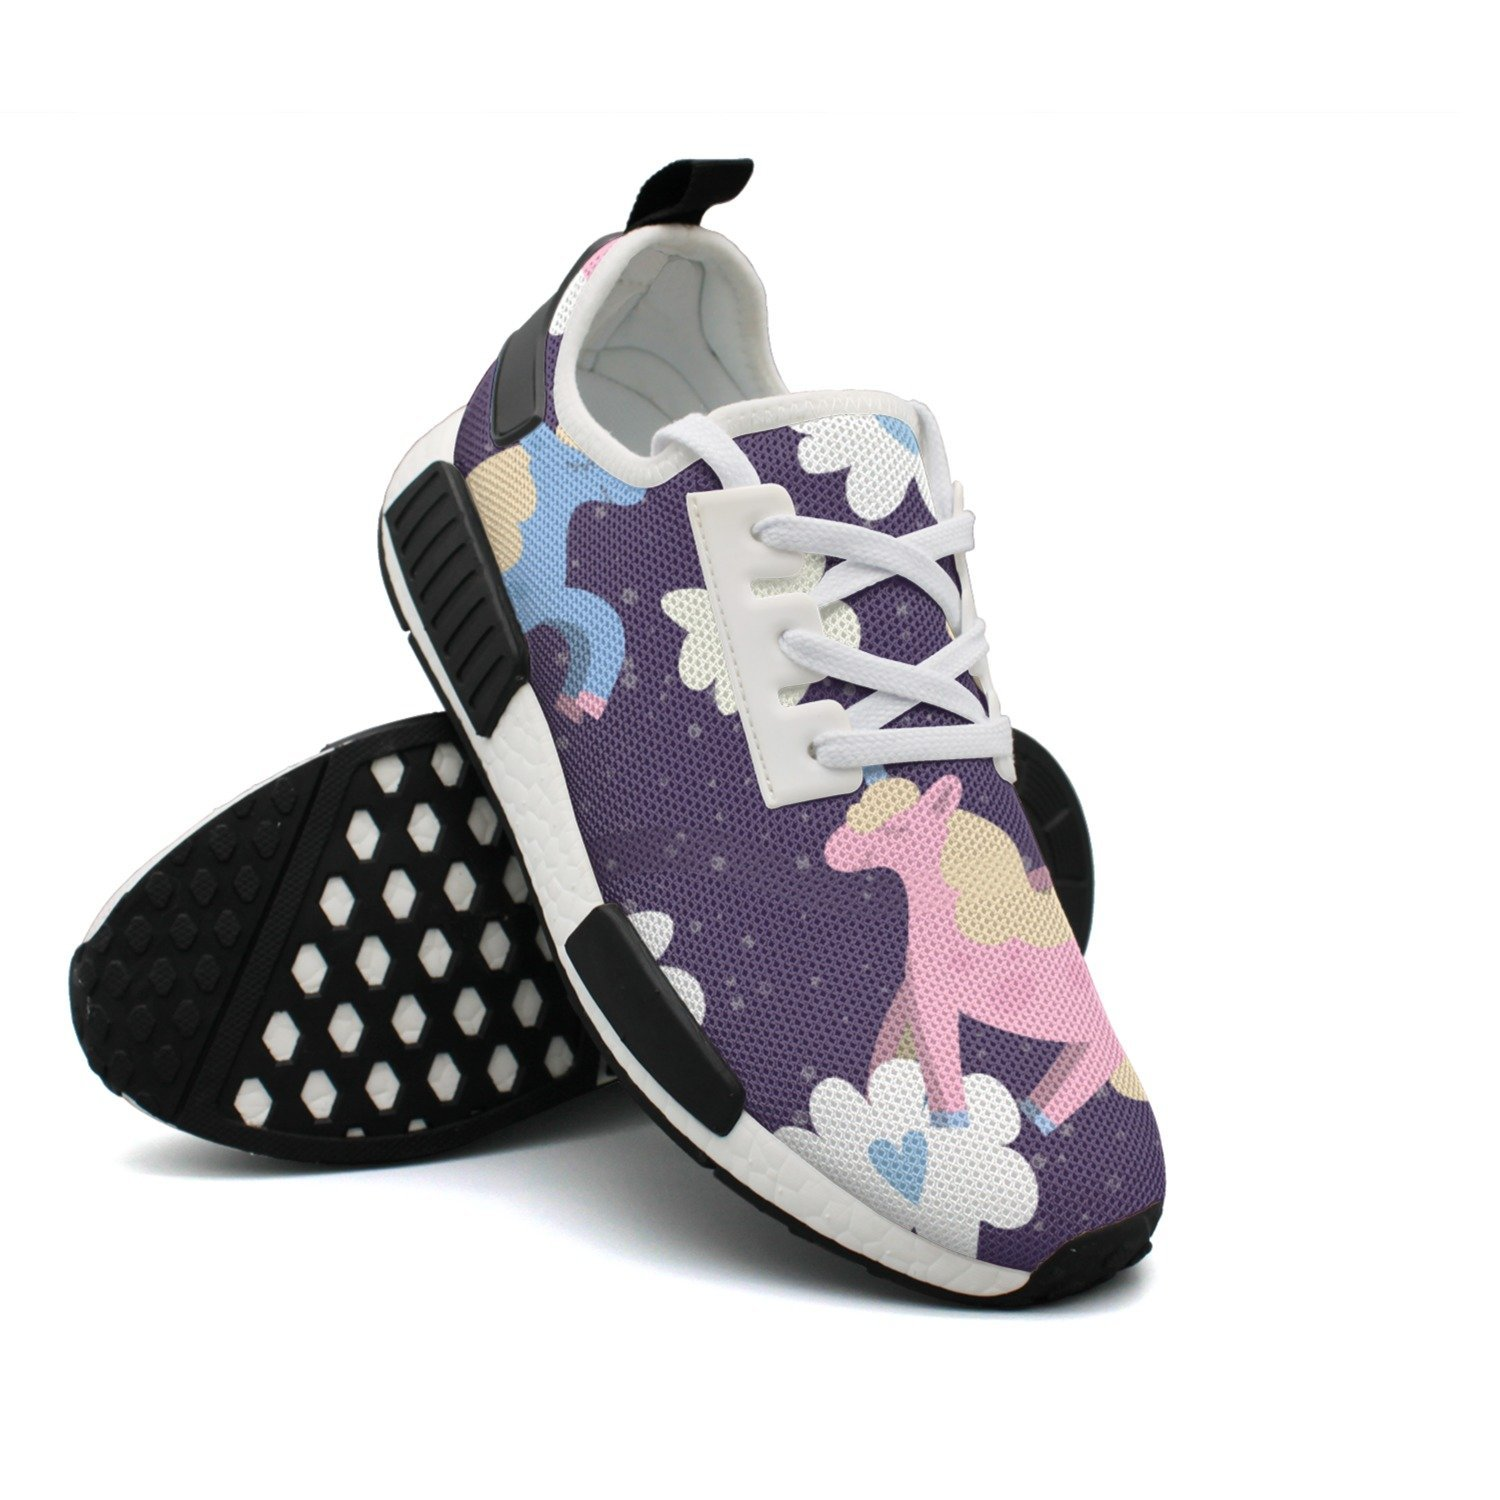 FZDH4 Women's Athletic Running Shoes Fashion Sneakers Fitness Shoes Casual Mesh Soft Sole Lightweight Breathable Running Unicorn Casual Walking Sneakers